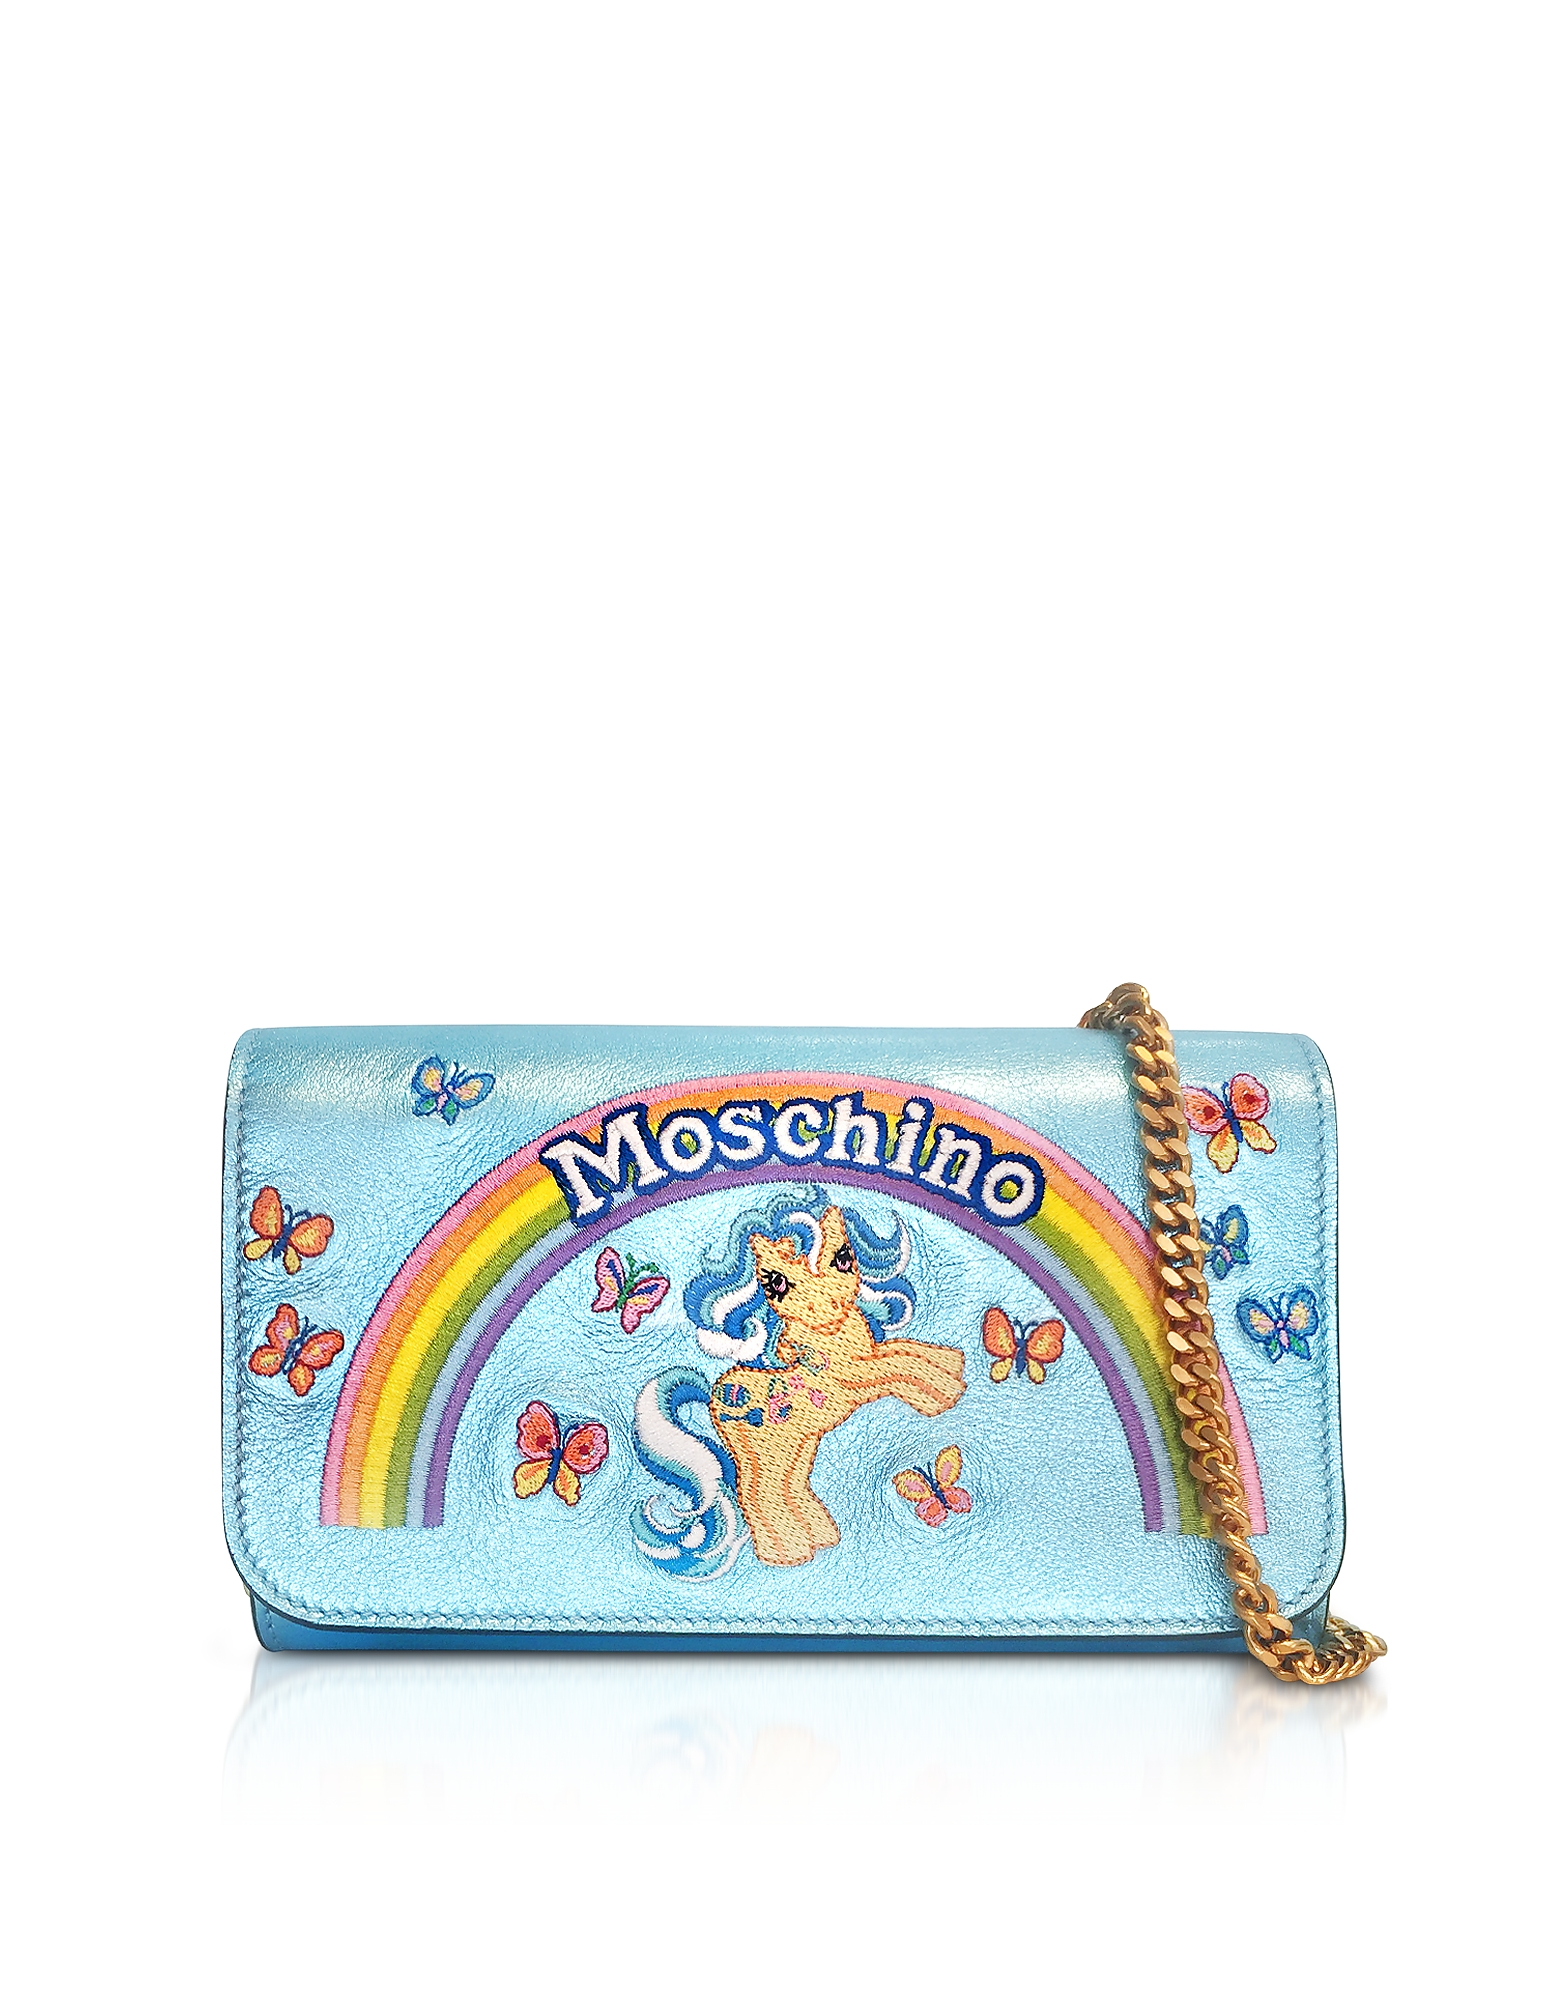 Moschino Handbags, My Little Pony Laminated Leather Wallet Clutch w/Chain